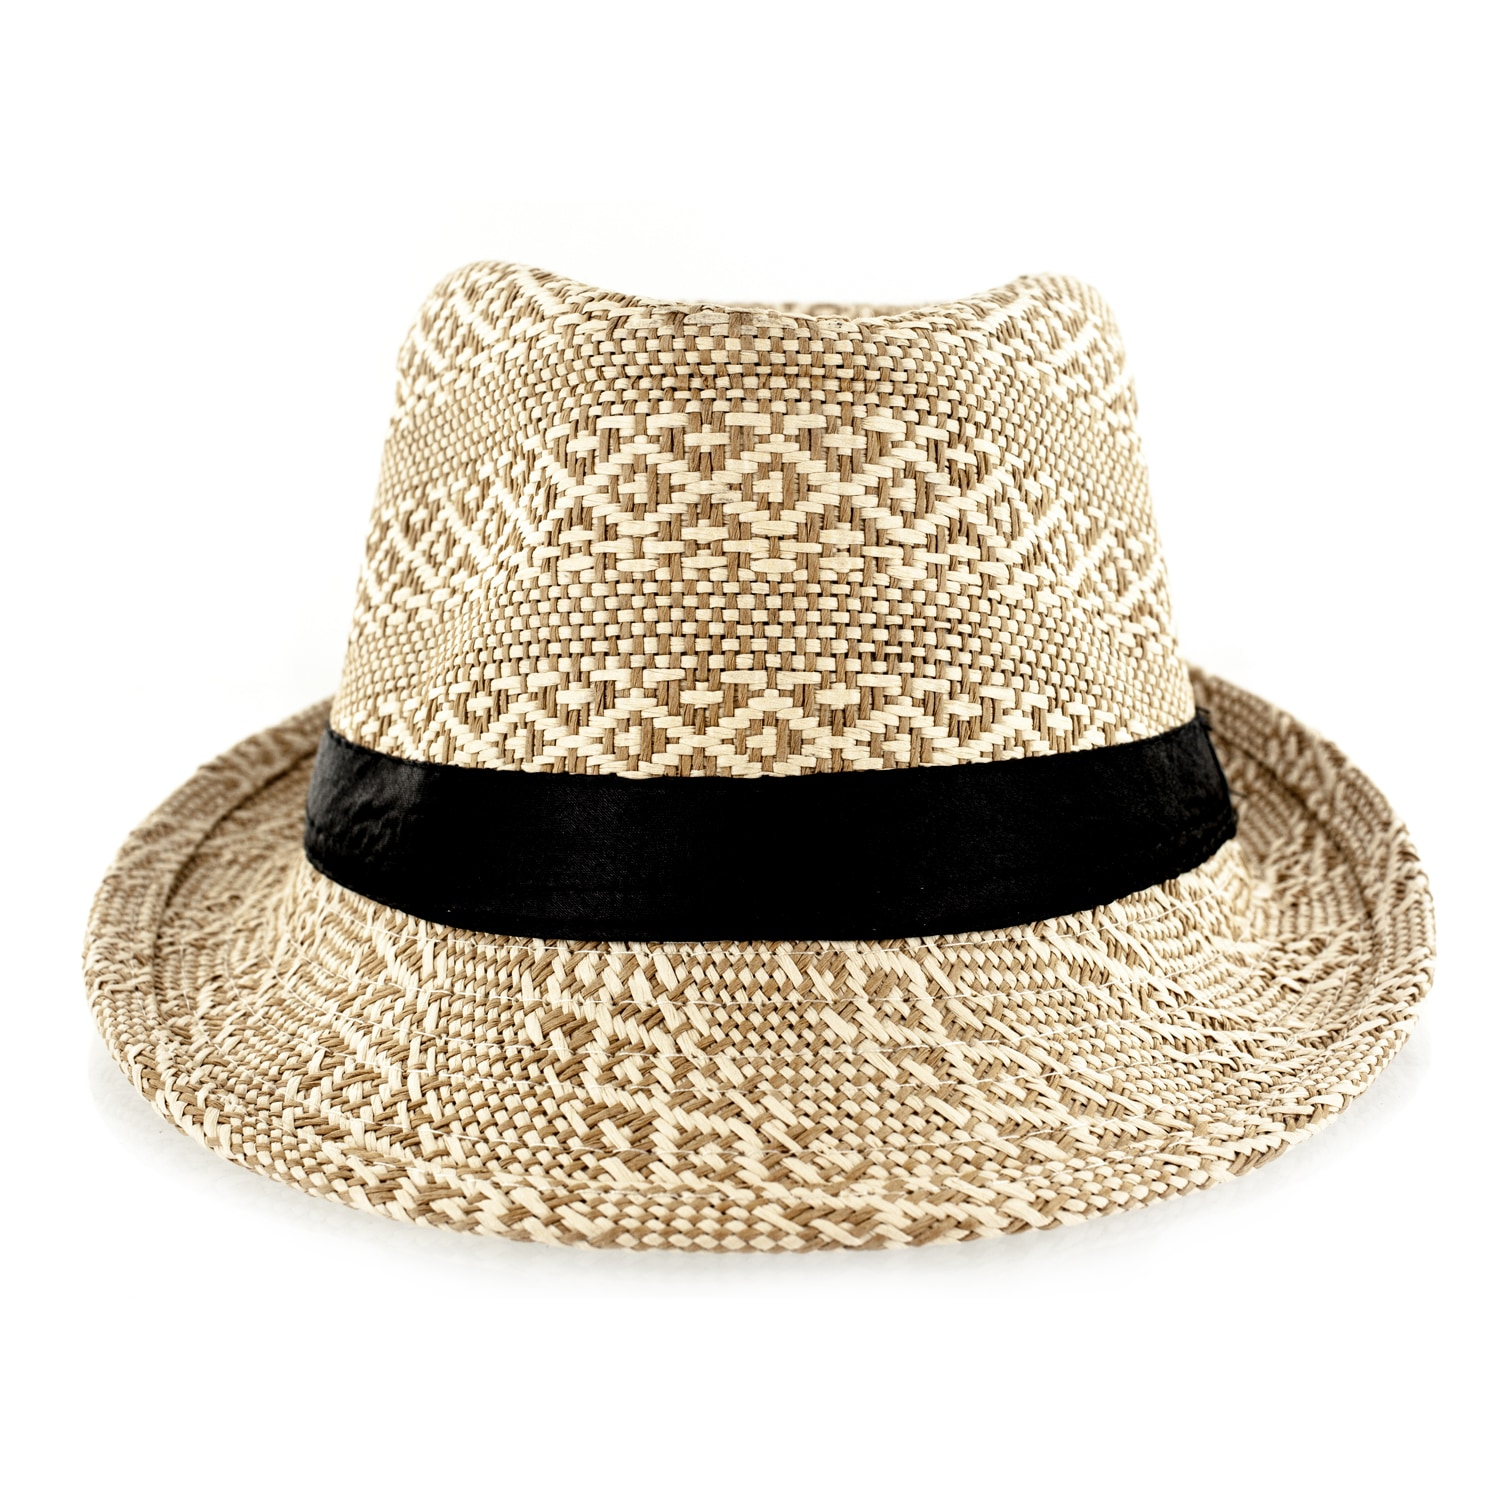 Faddism Black Fabric Trim/Straw Weave Fedora Hat